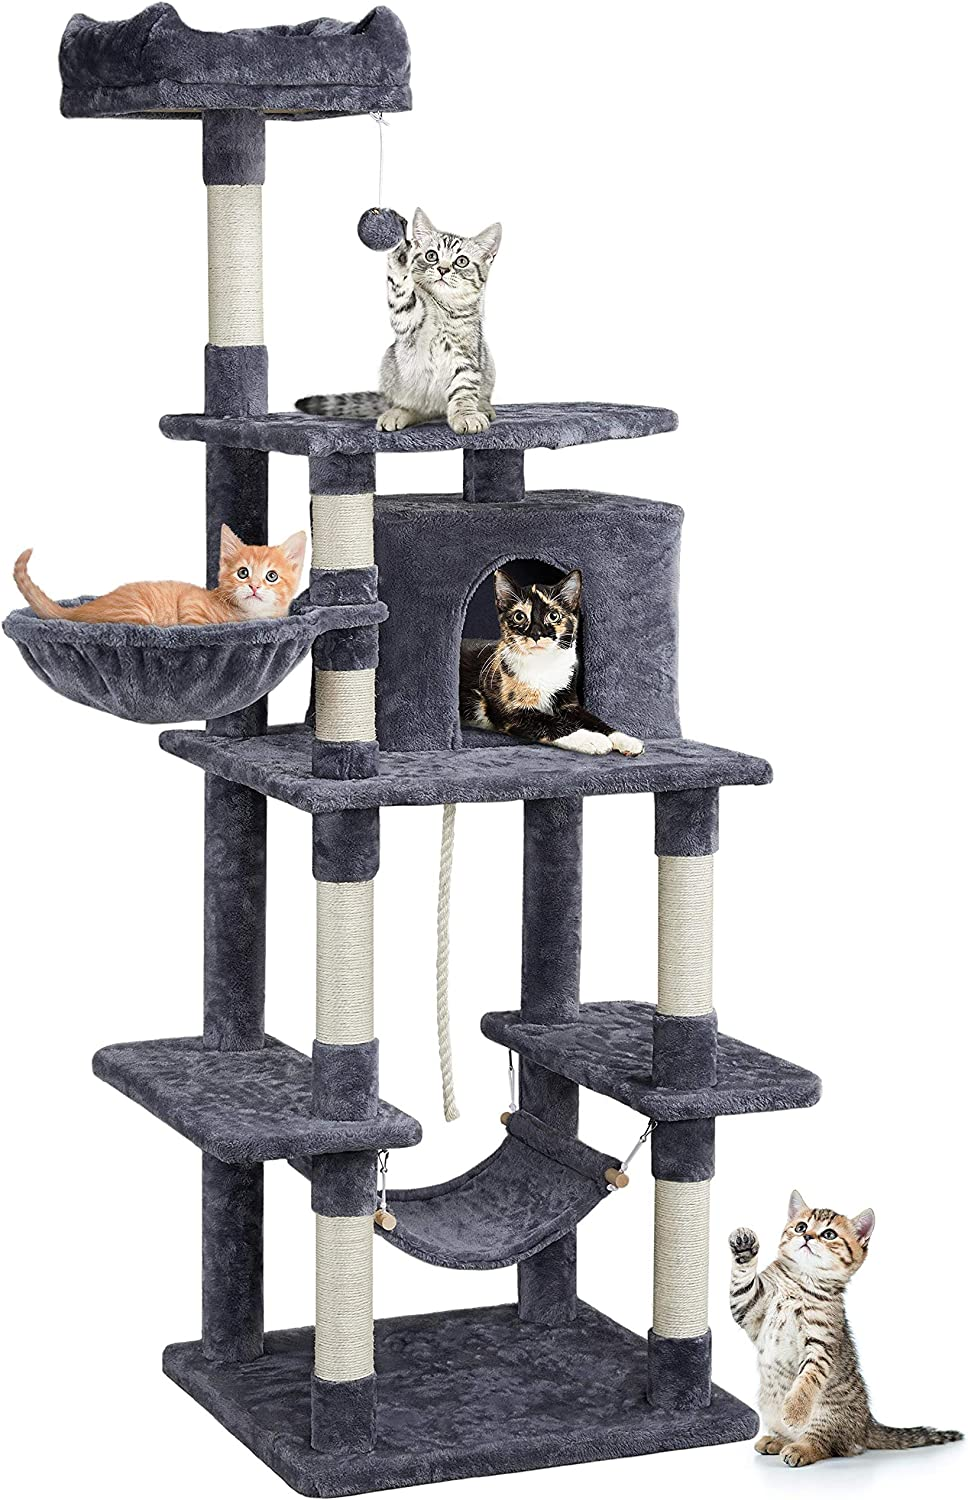 YAHEETECH 69.5inch Multi Level Cat Tree Tower for Large Cats with Condo & Perch & Basket & Scratching Posts & Hammock Cat Activity Center